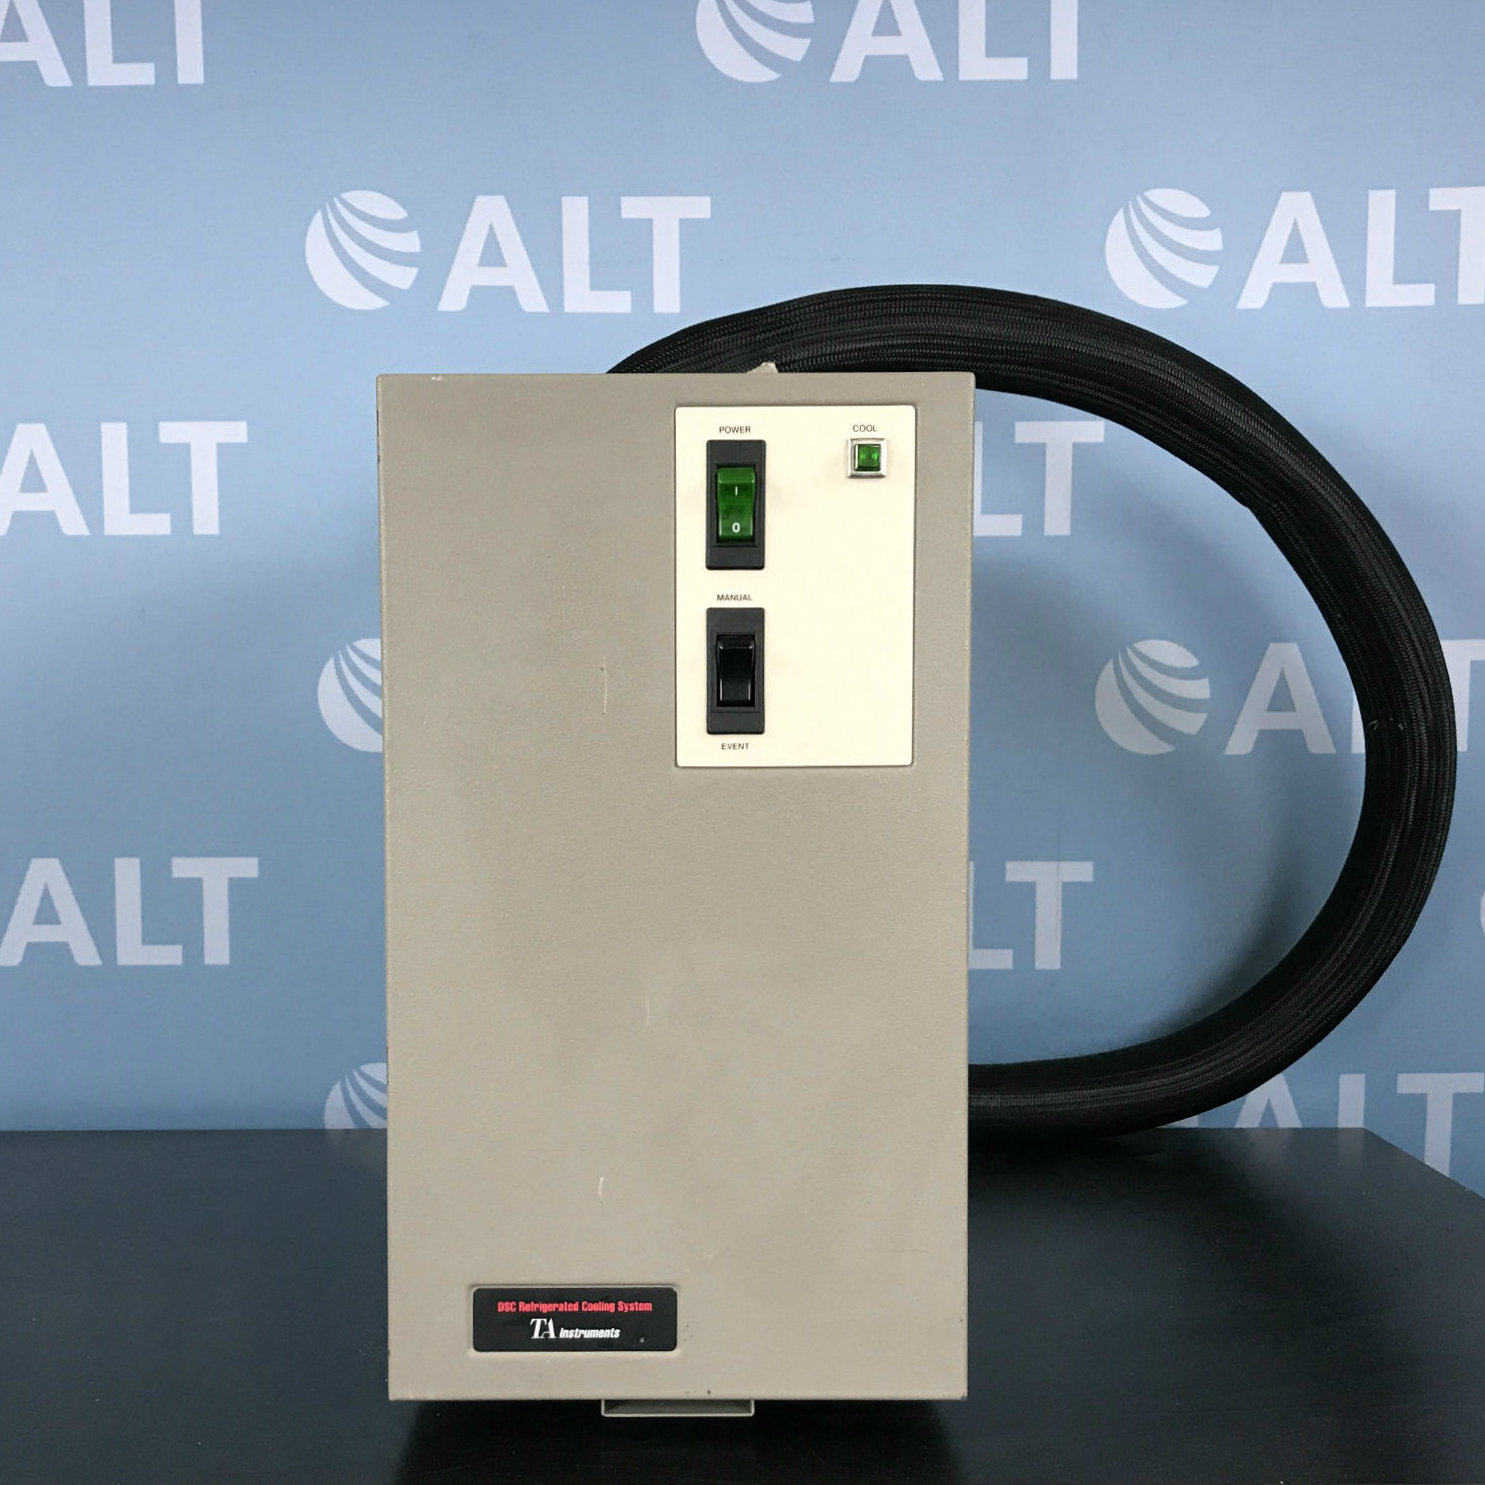 DSC Refrigerated Cooling System 991100.901 Name